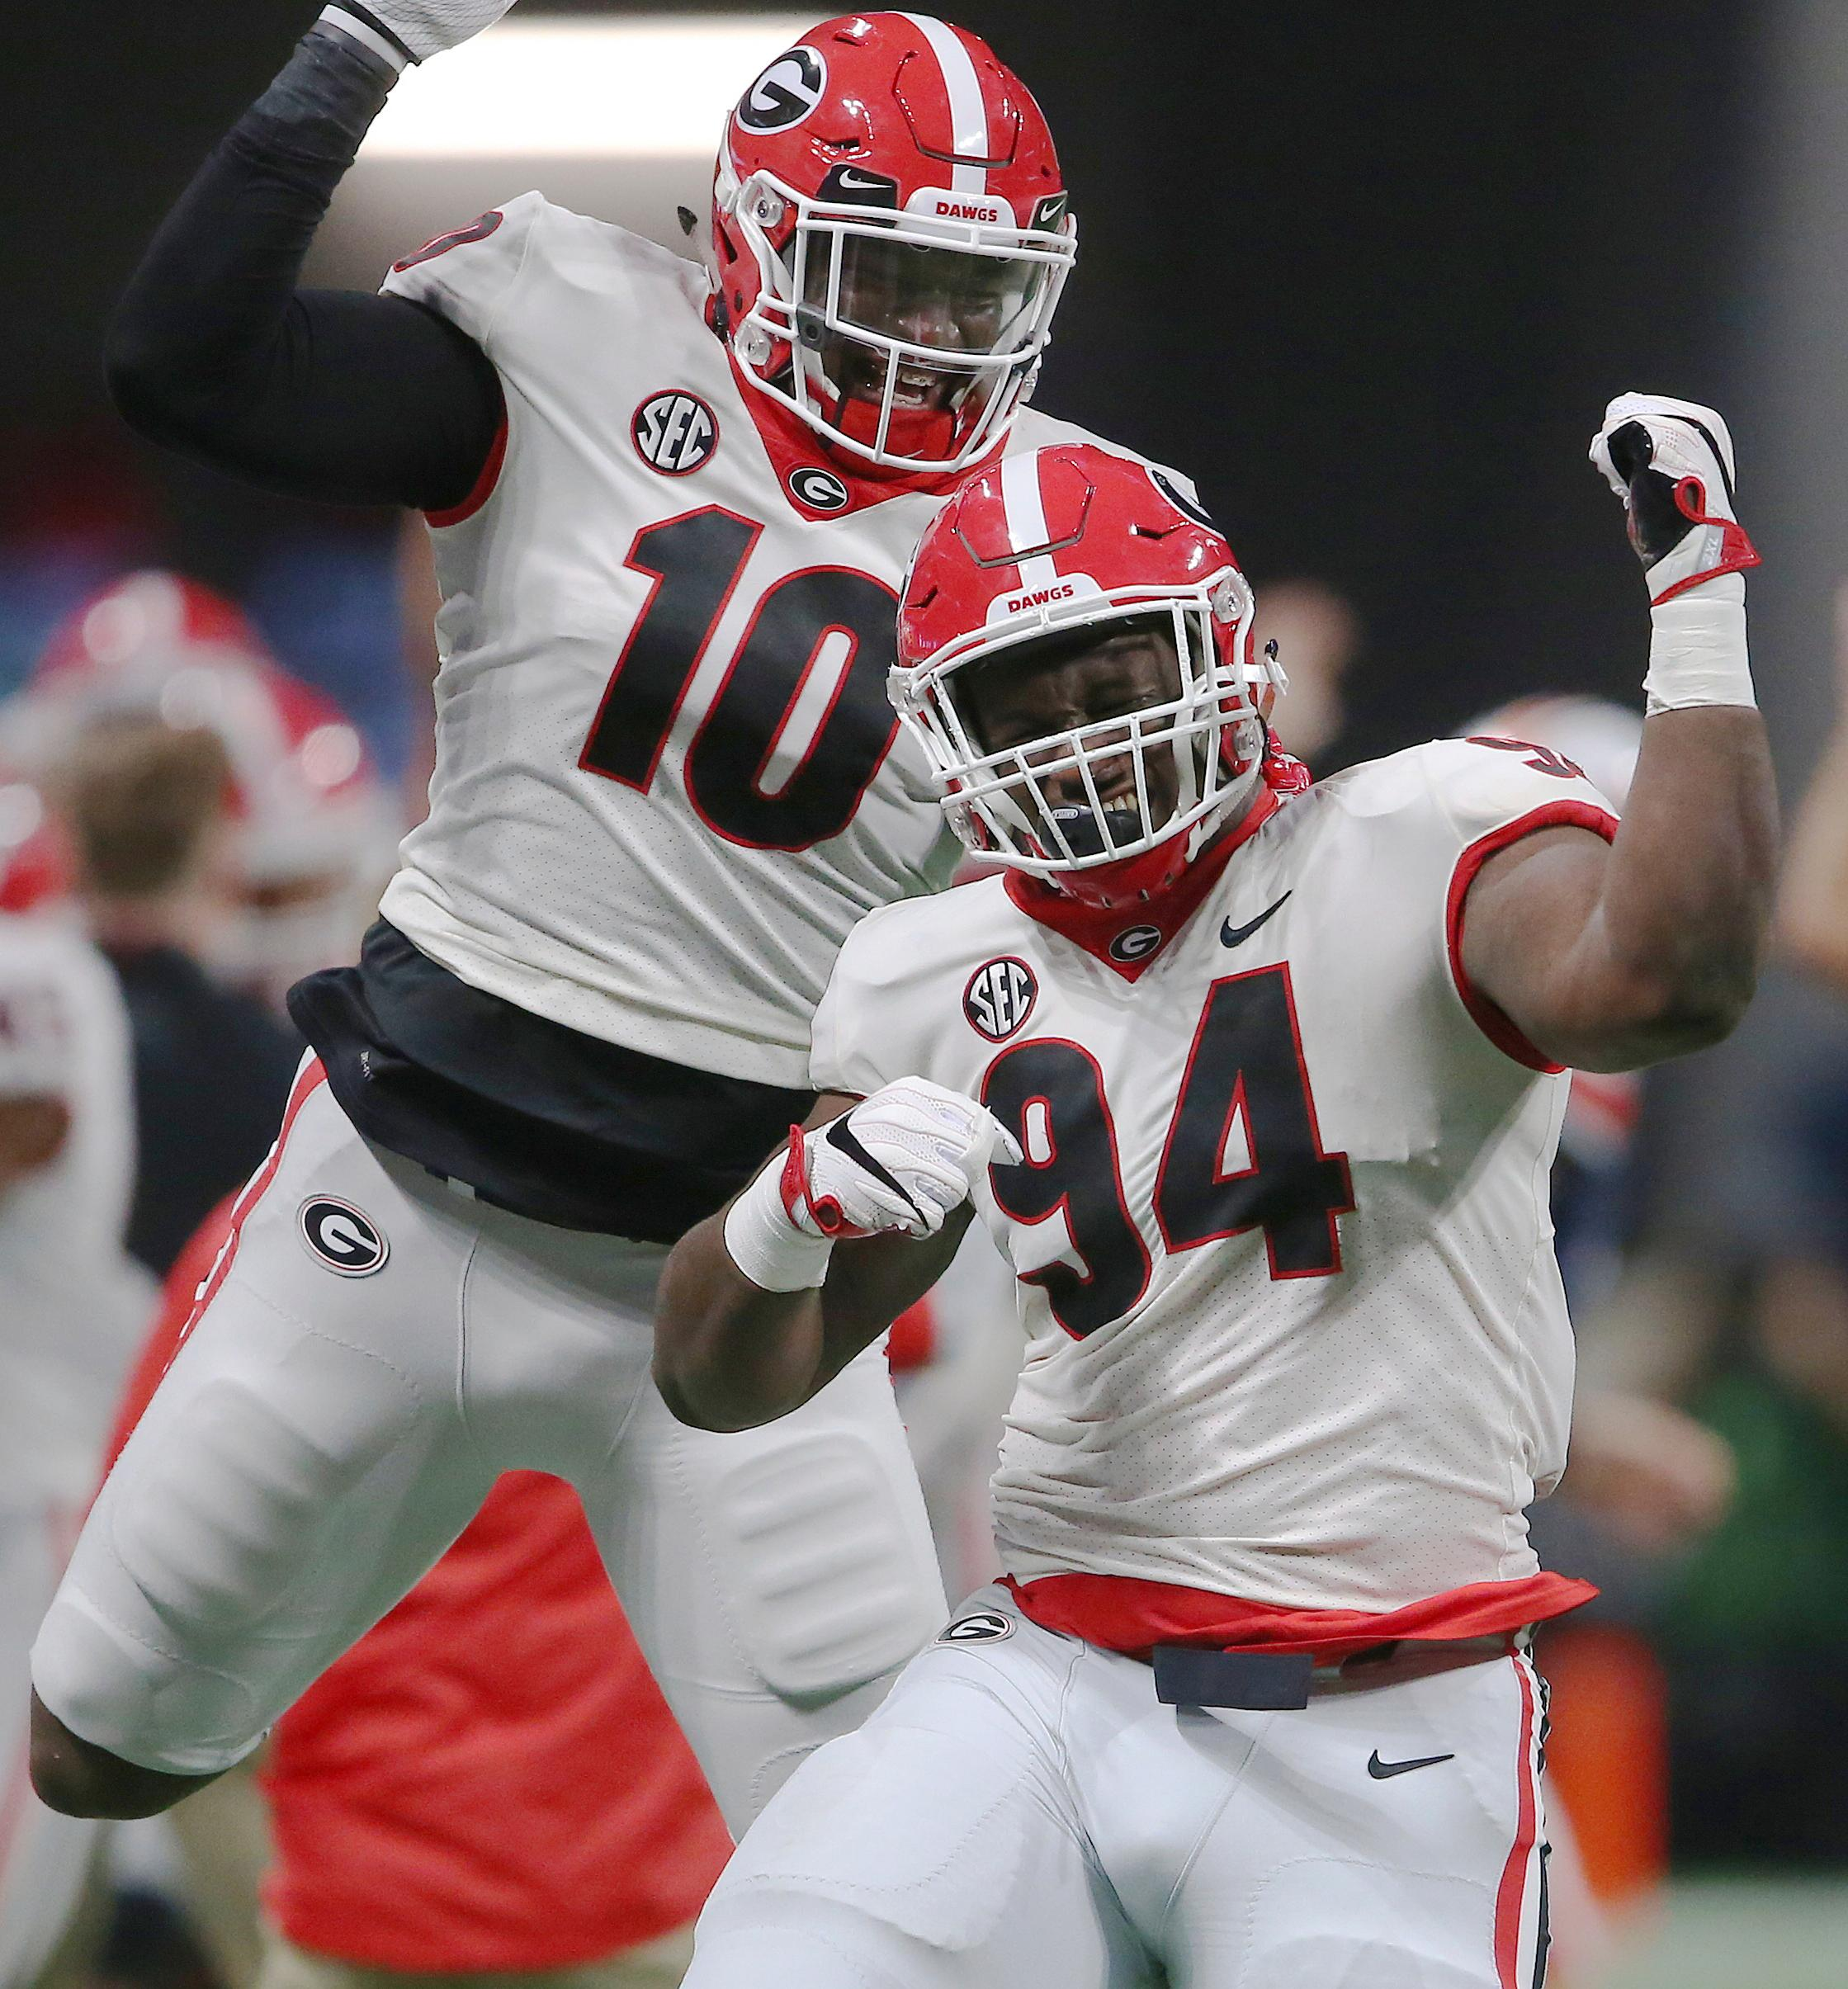 Georgia's Malik Herring (10) and Michael Barnett (94) celebrate a blocked field goal against Auburn during the second half of the Southeastern Conference championship NCAA college football game, Saturday, Dec. 2, 2017, in Atlanta. (AP Photo/John Bazemore)